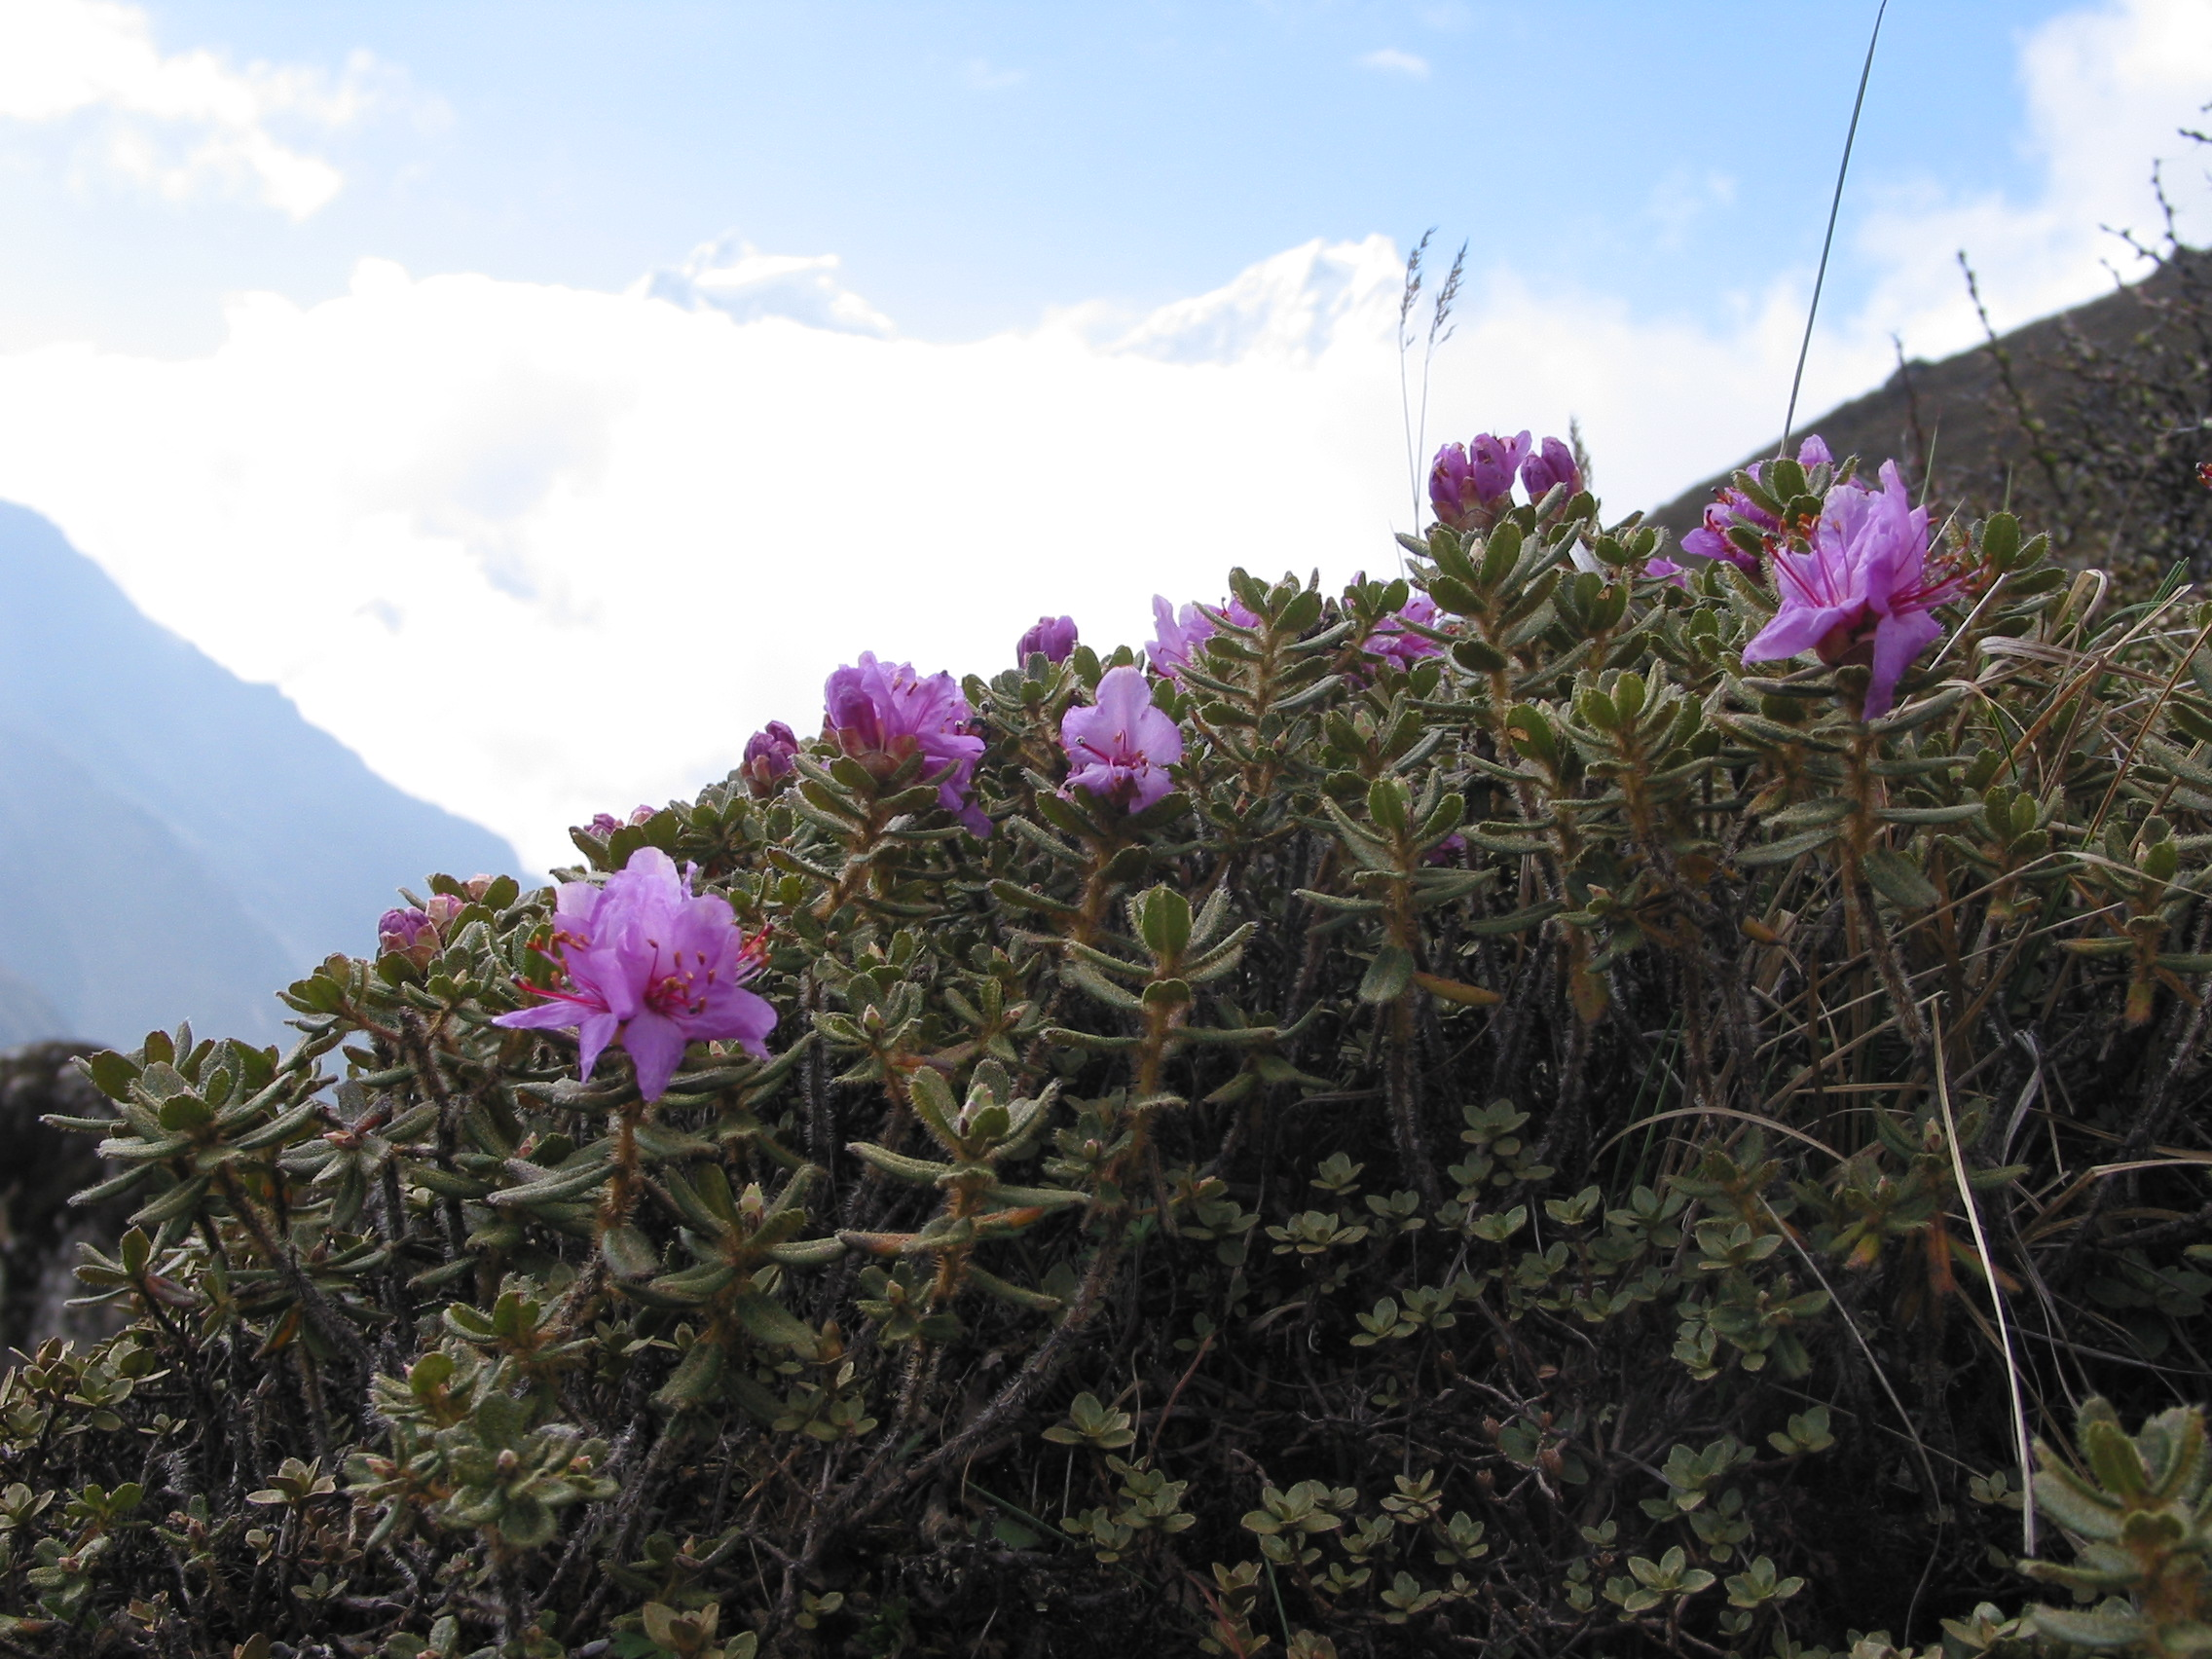 Flowers and fauna in Everest region